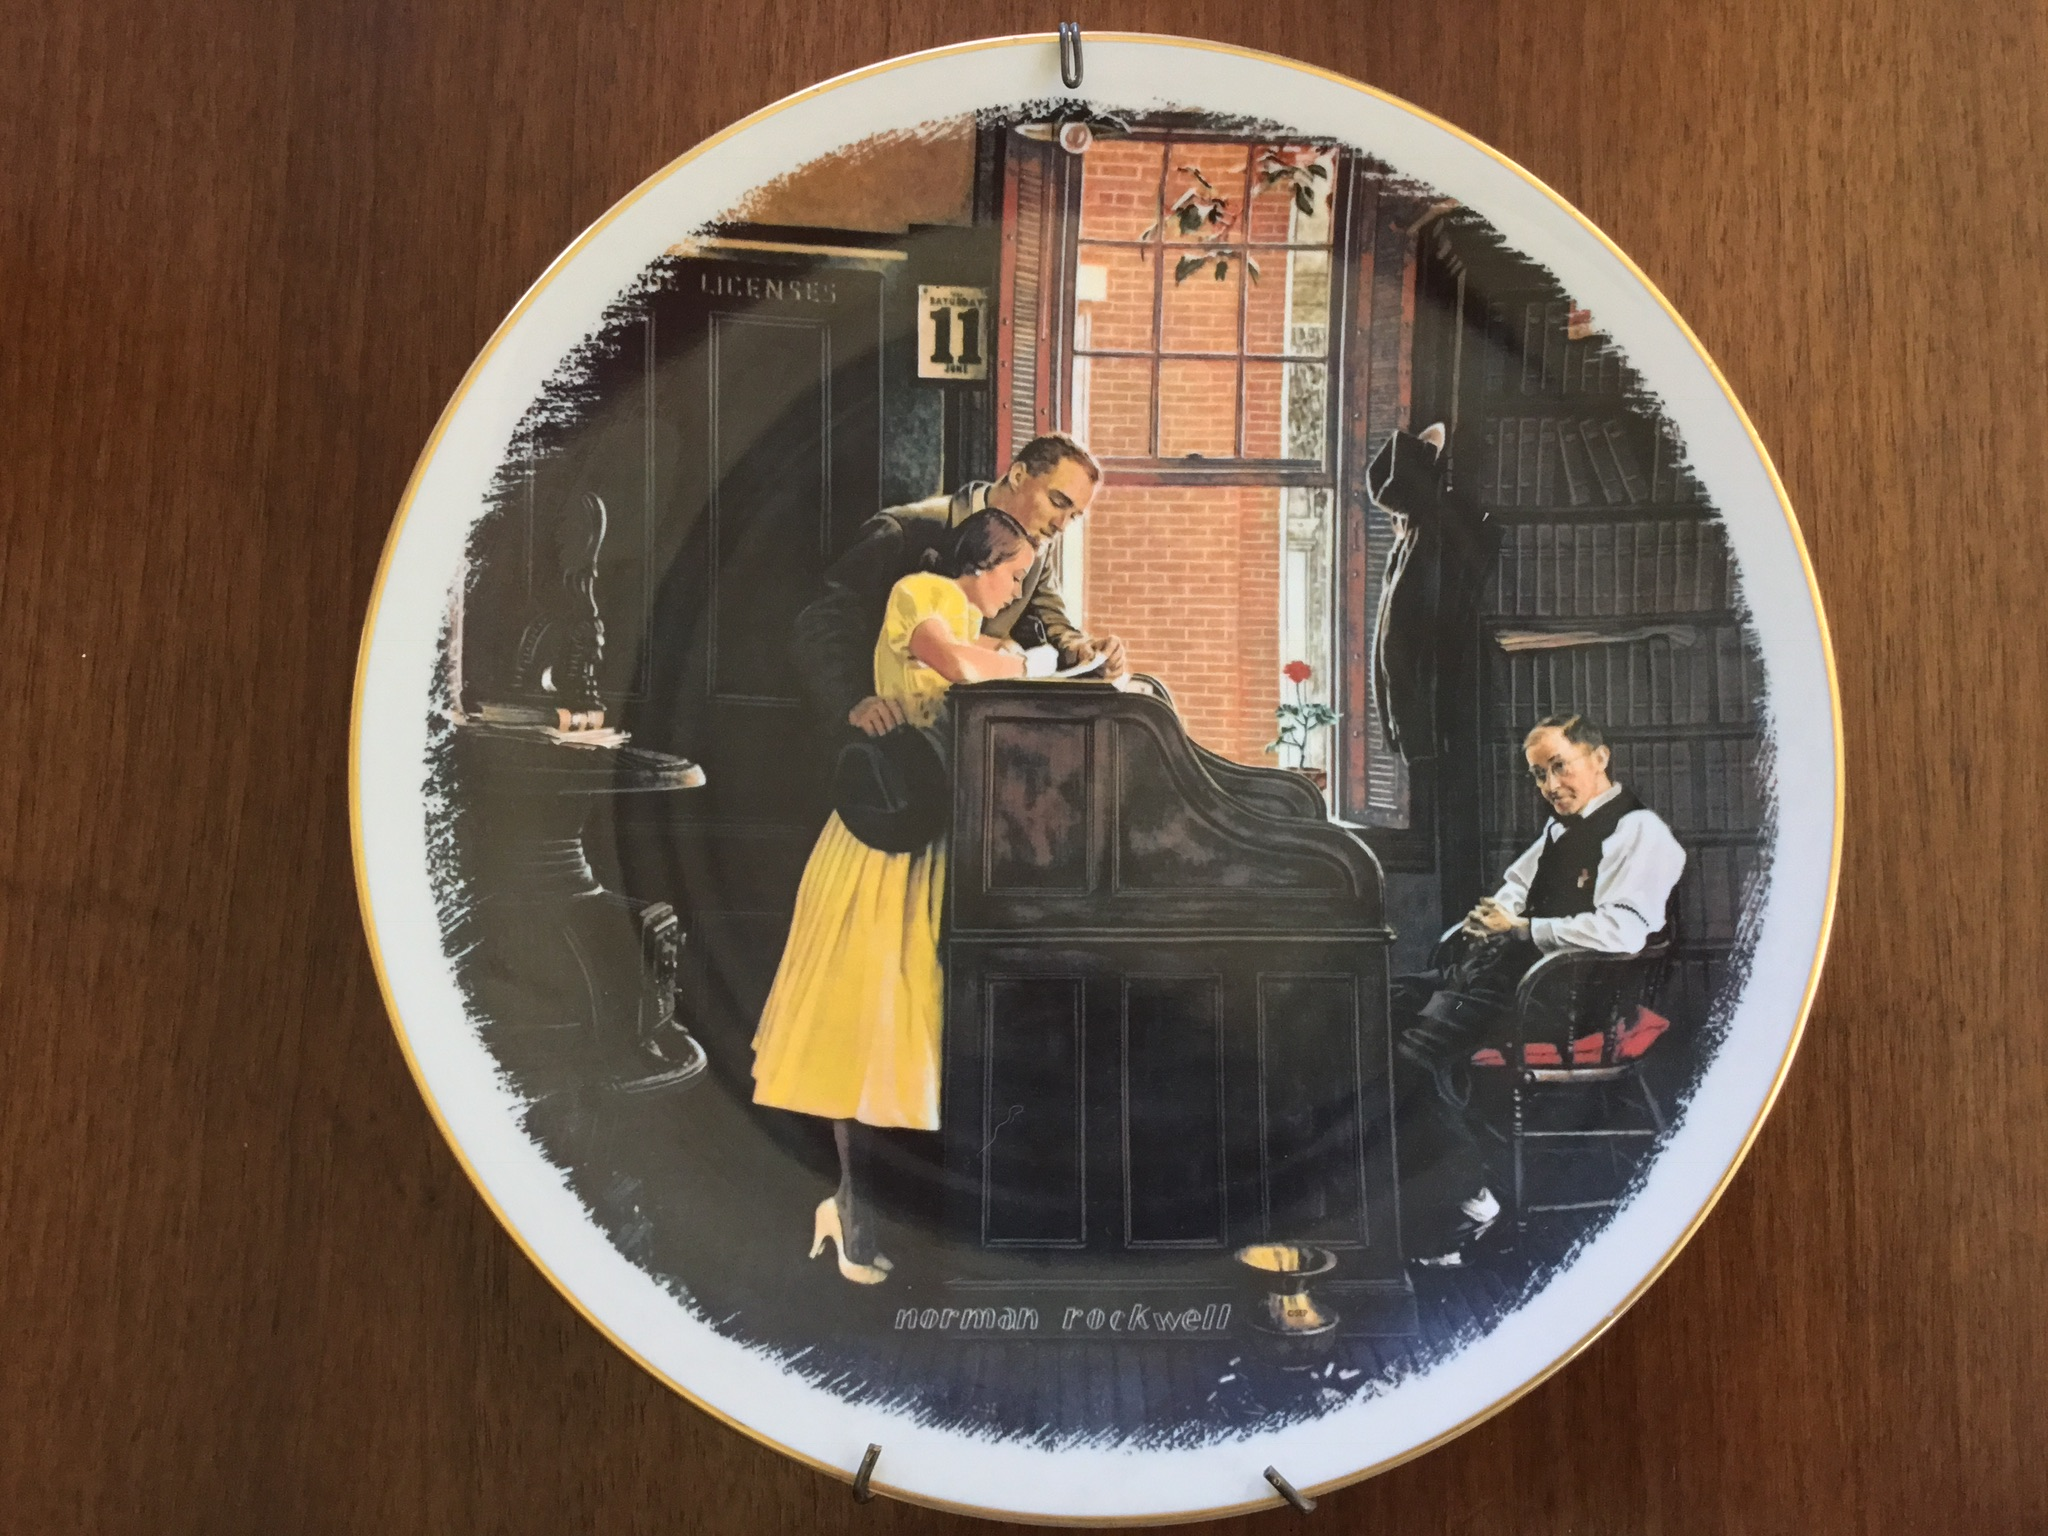 Gorham Decorative Plate, The Marriage License by Norman Rockwell